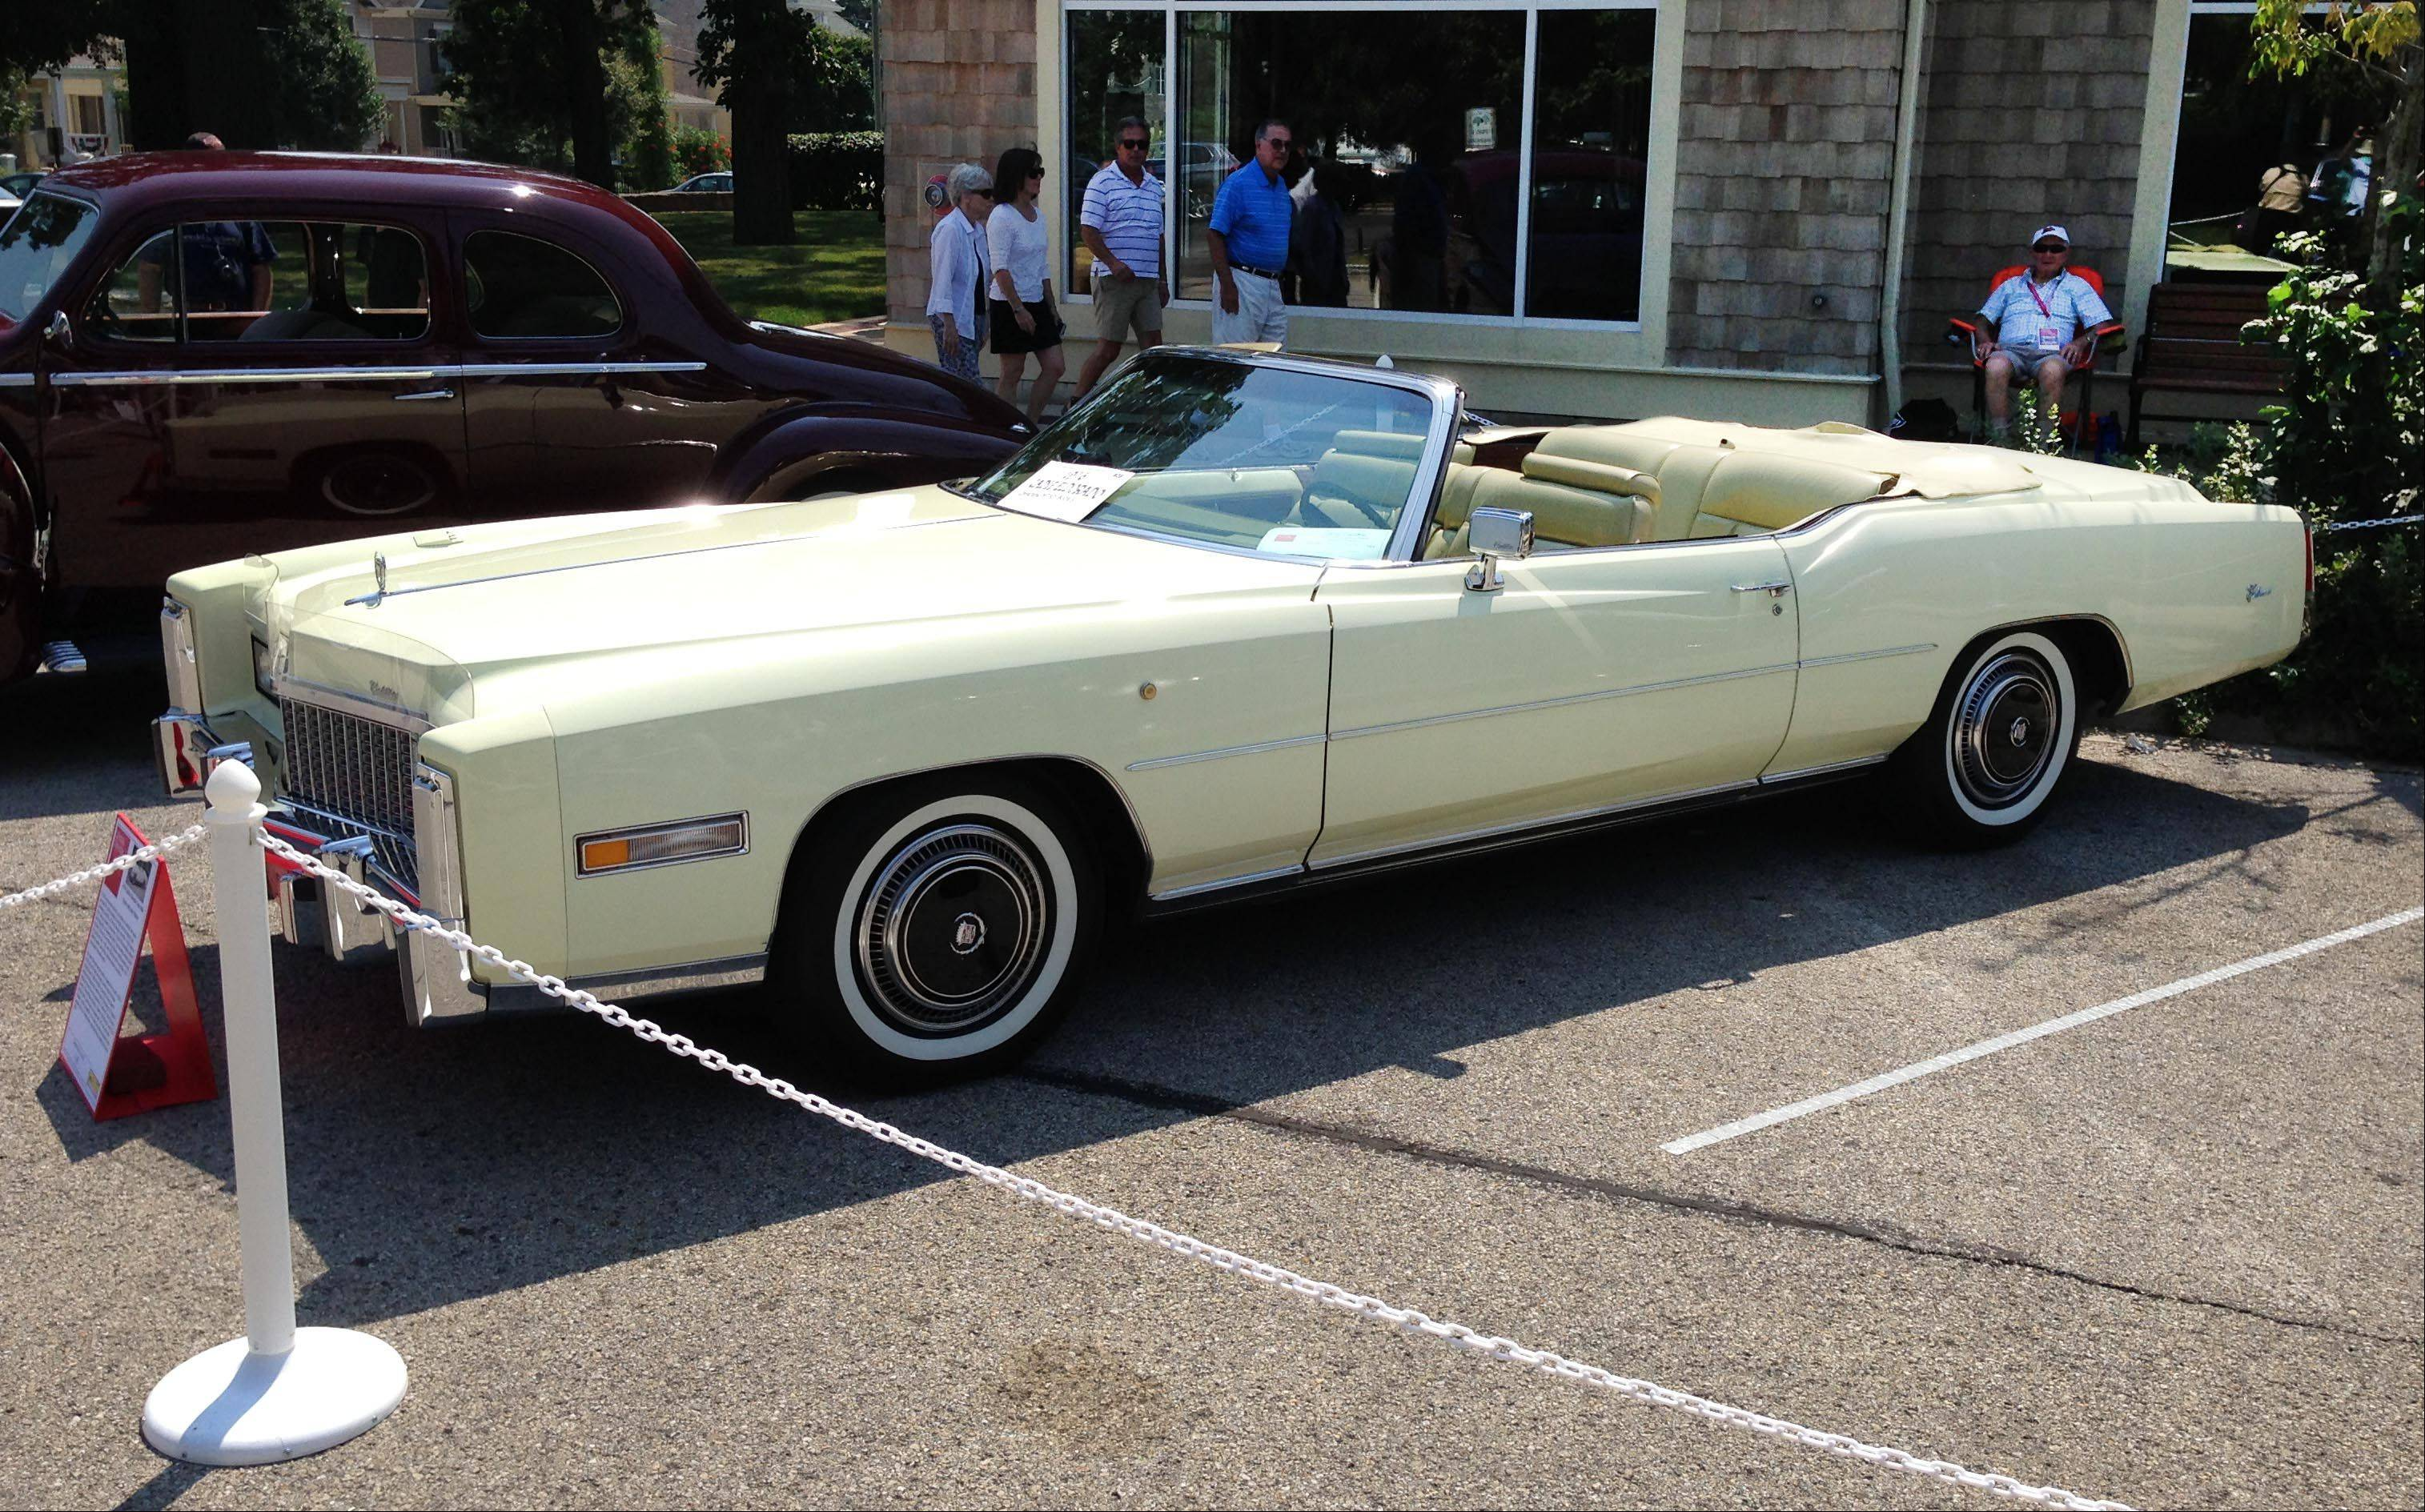 A 1976 Cadillac Eldorado two door convertible, owned by Hinsdale resident Charles Hartley, were among the cars on display Sunday during the Concours d'Elegance in downtown Geneva.